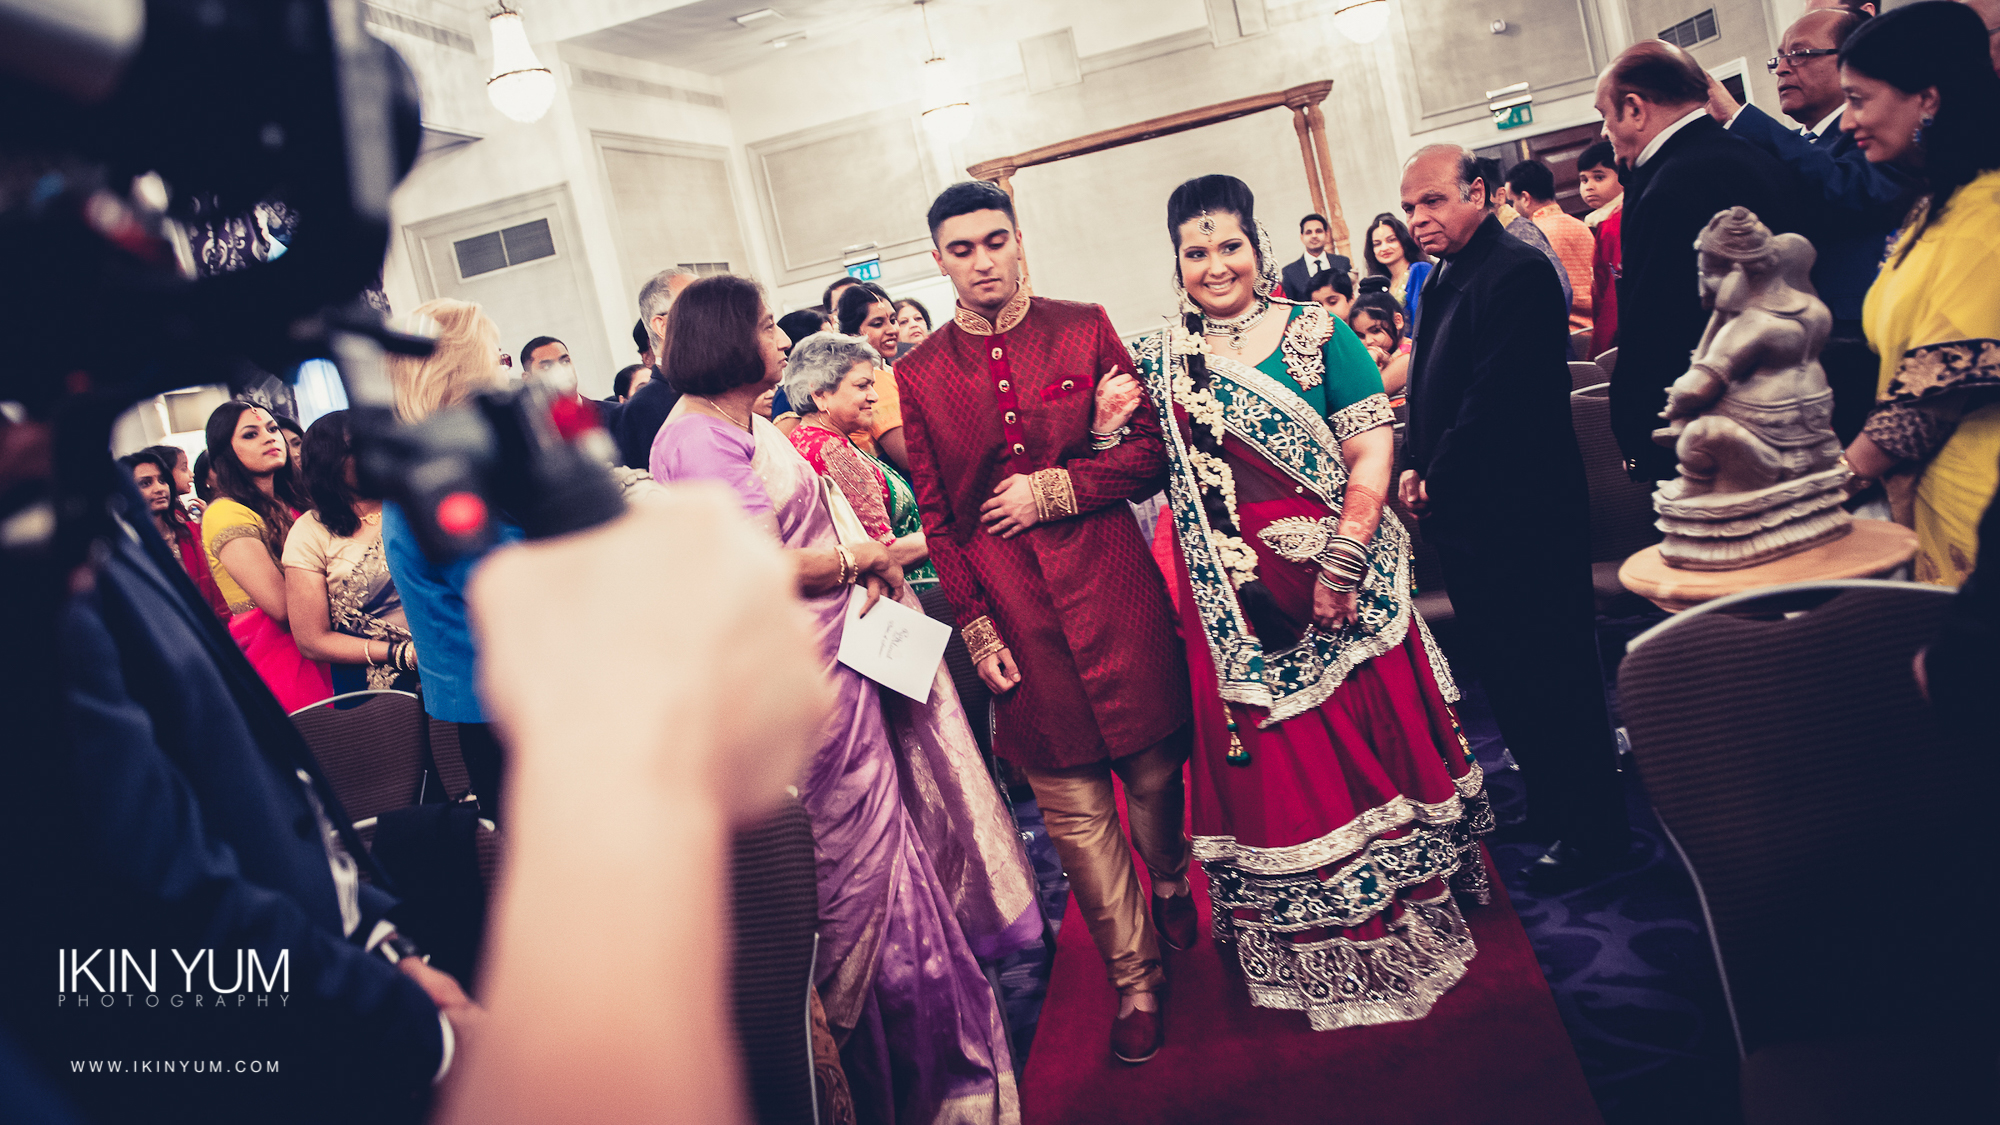 Grand Connaught Rooms Wedding - Minal & Raj - Ikin Yum Photography-054.jpg